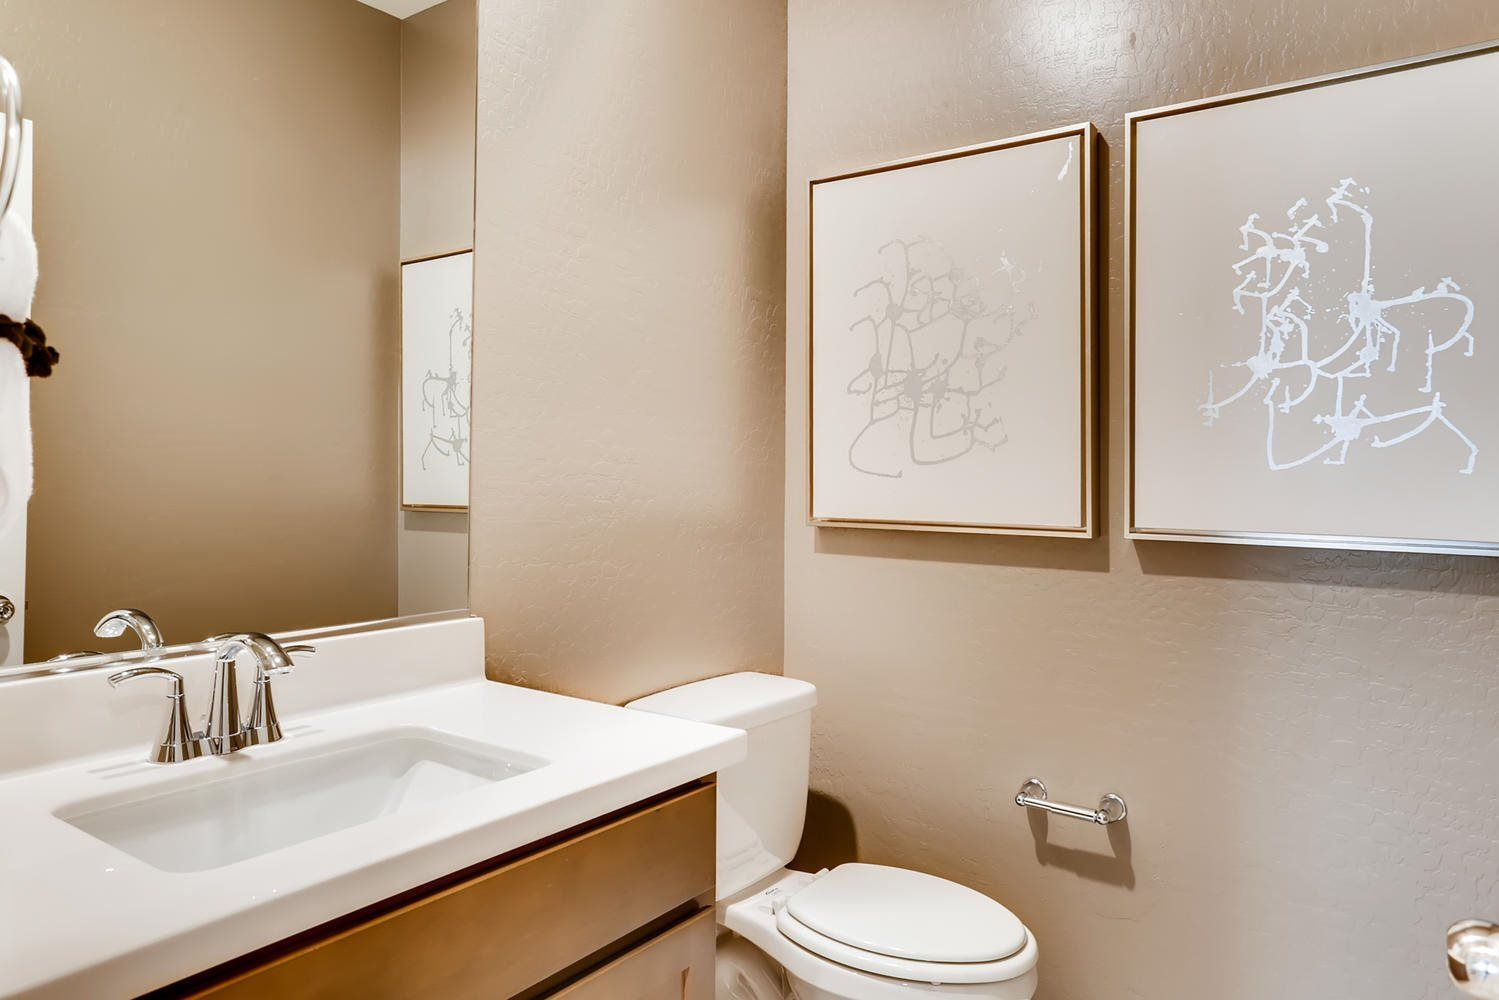 Bathroom featured in the Vera By Lennar in Las Vegas, NV